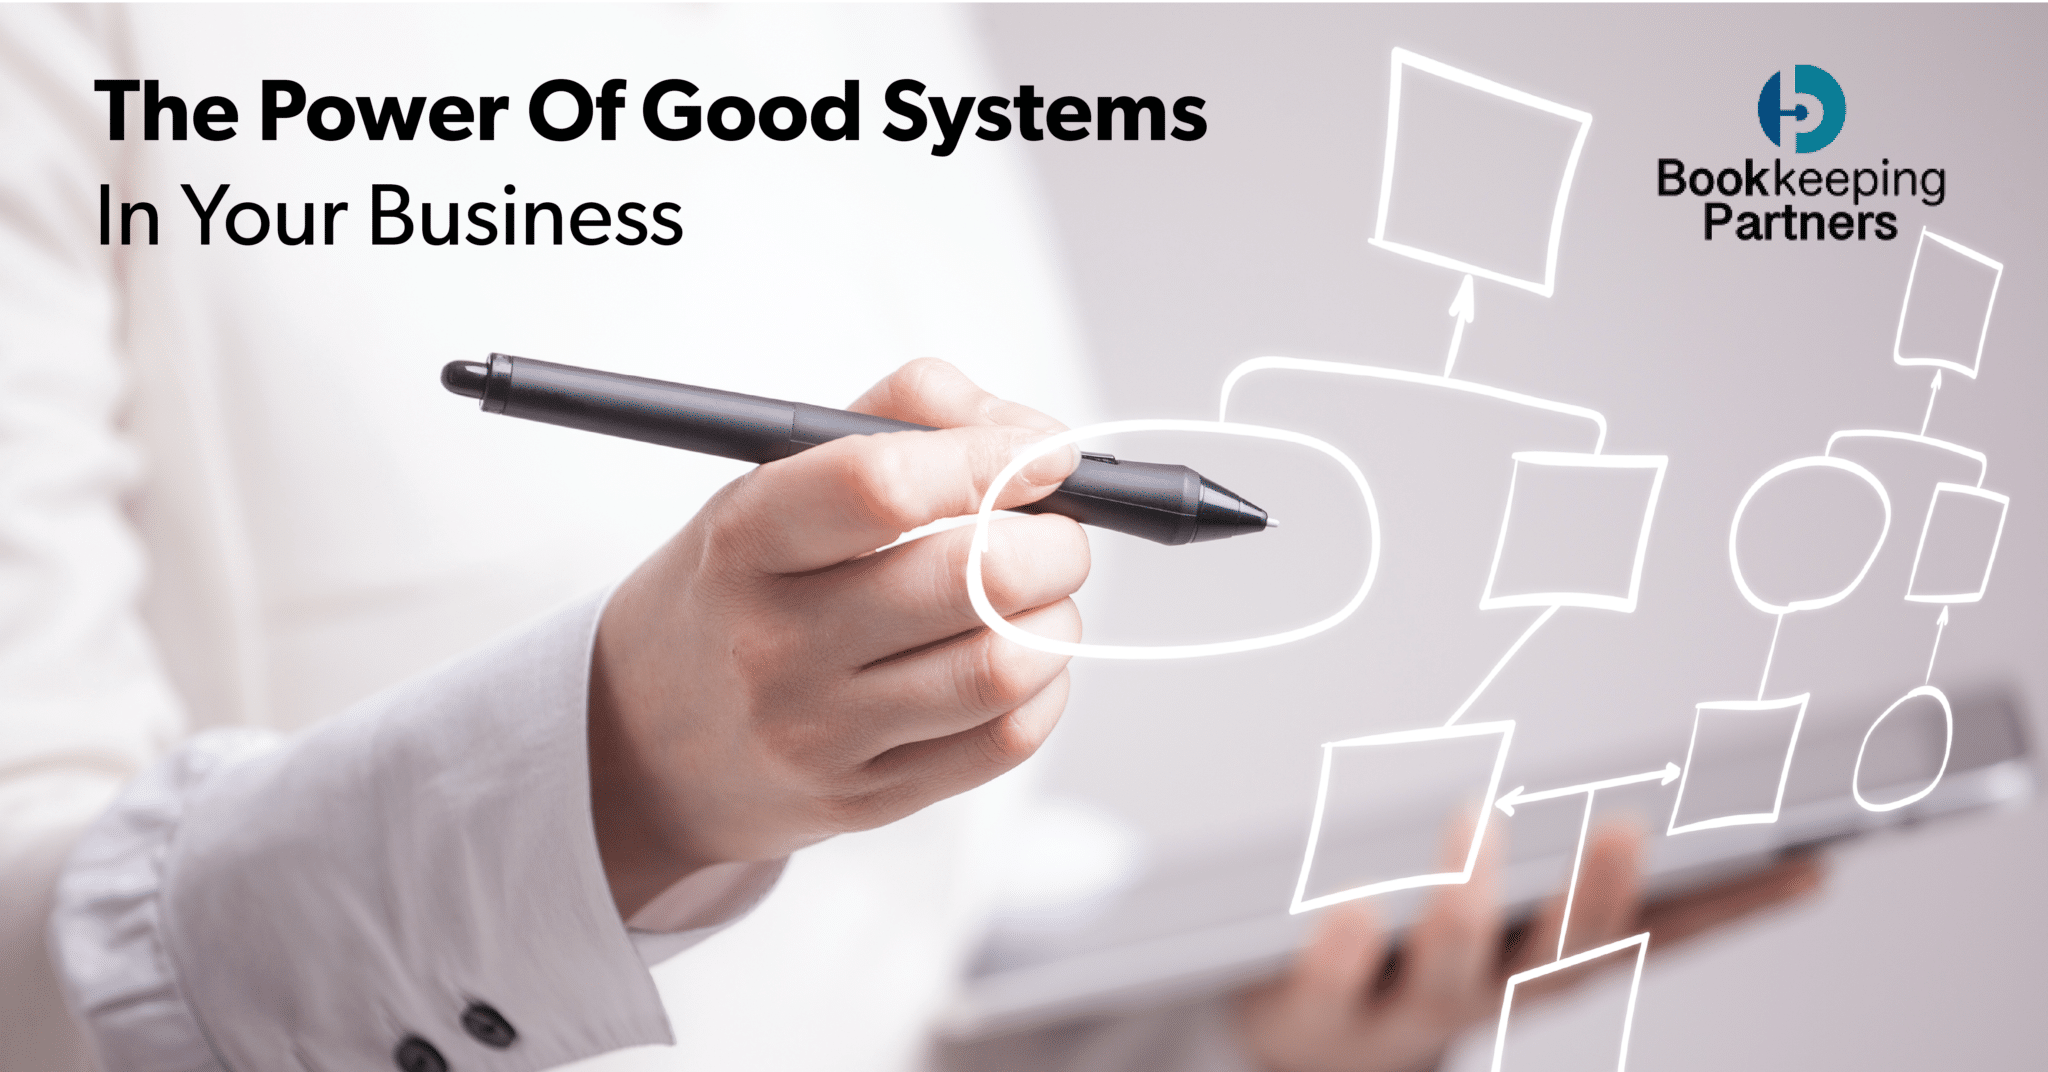 The Power Of Good Systems In Your Business